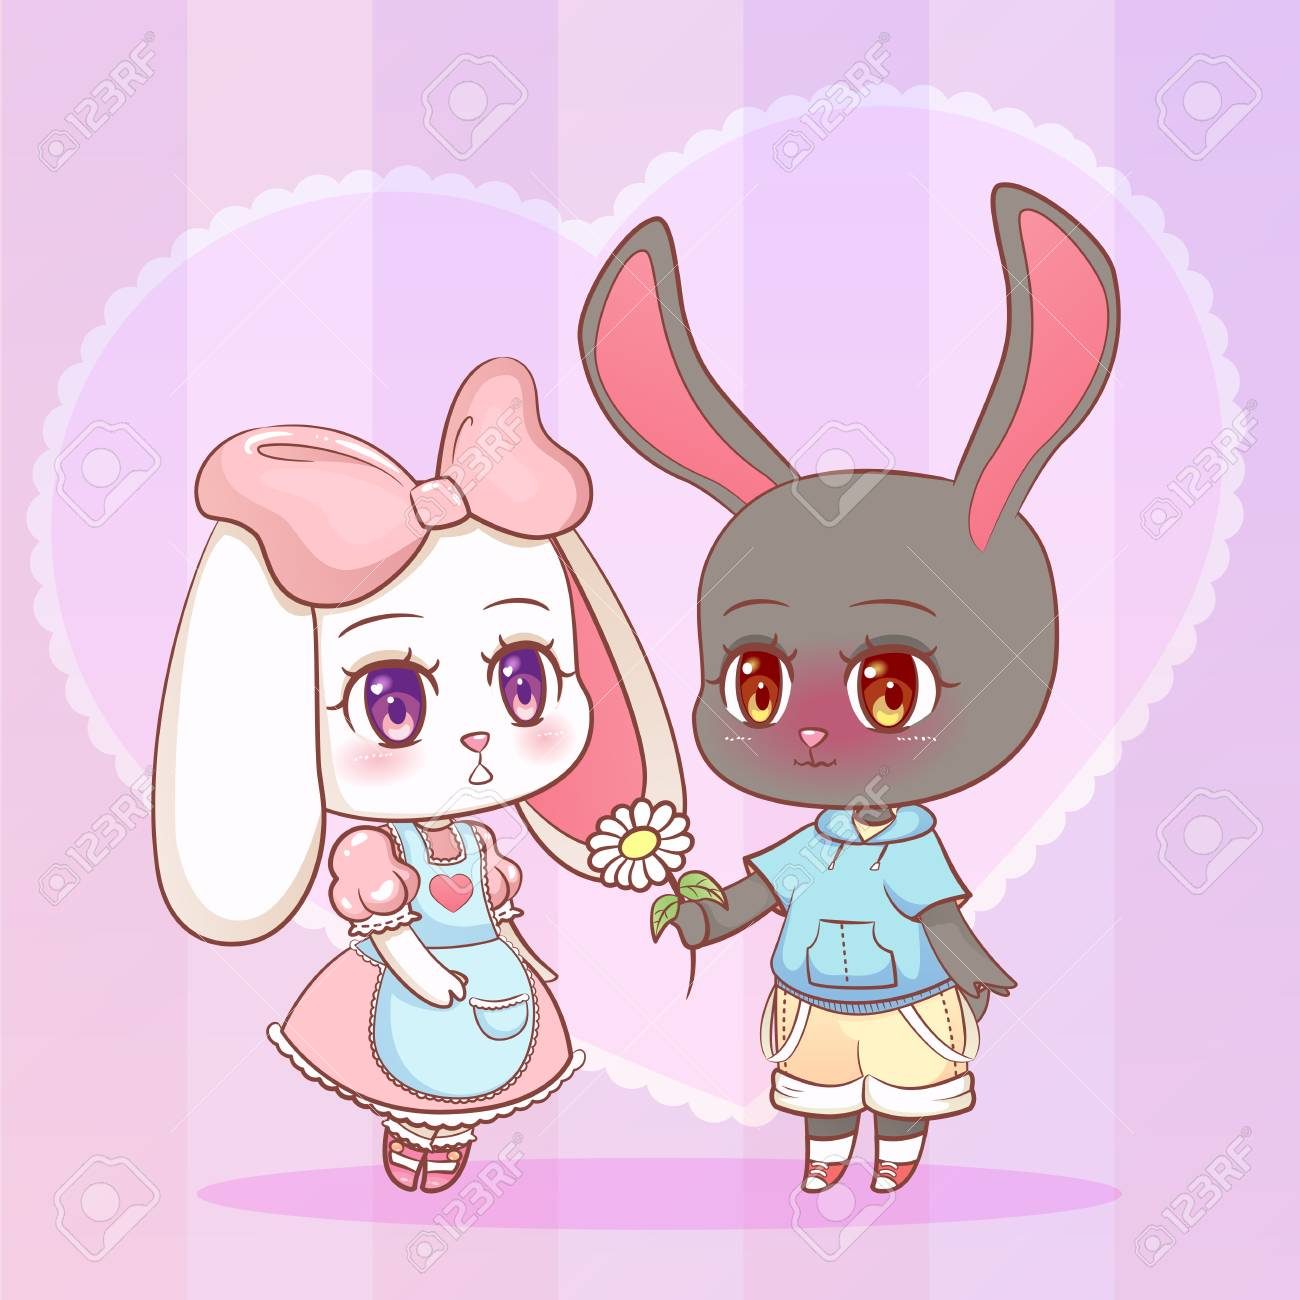 Sweet Little Cute Anime Cartoon Puppy Bunny Rabbit Boy And Girl